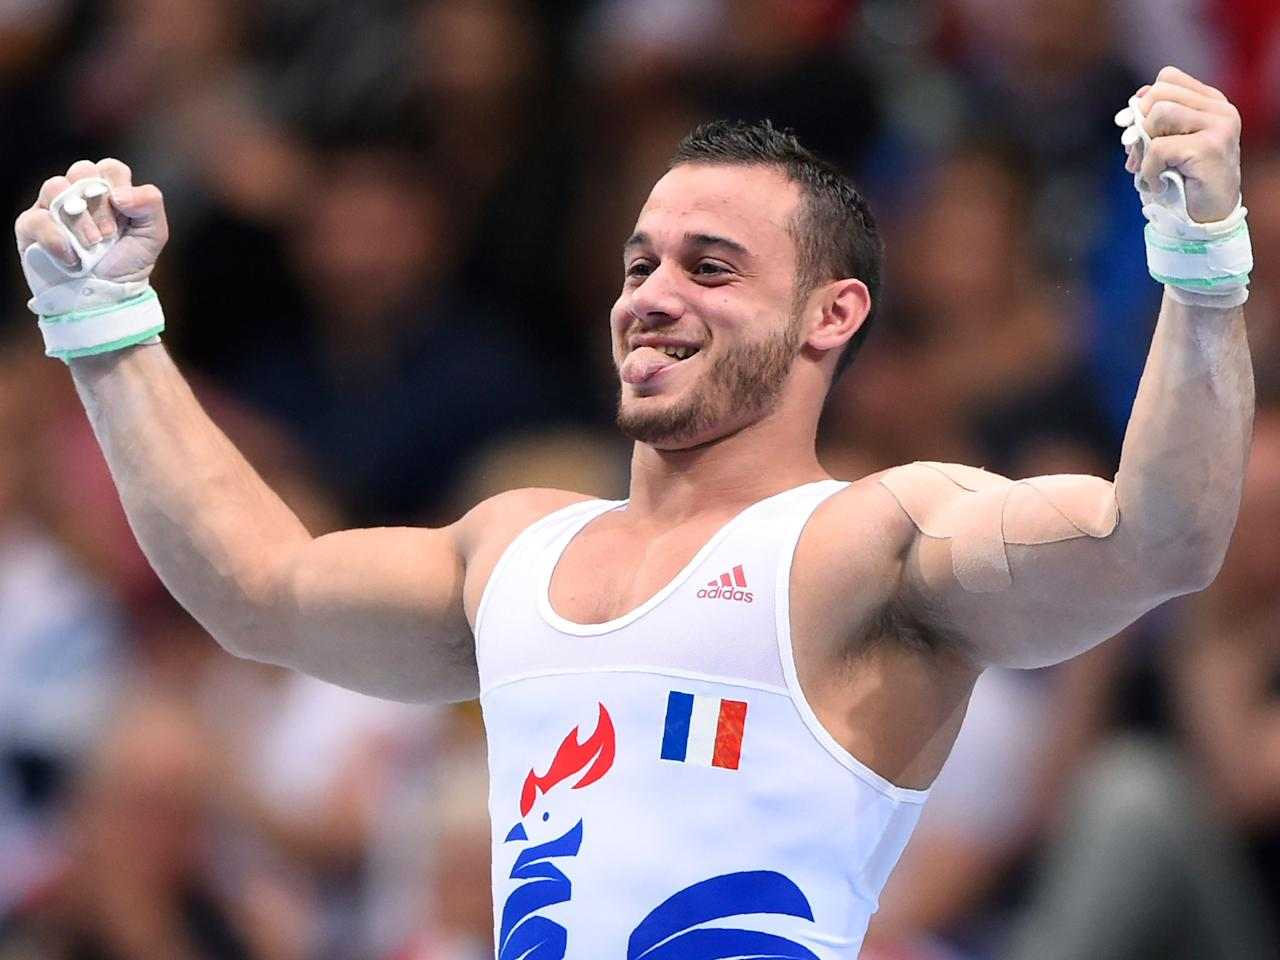 French gymnast Samir Ait Said performs first somersault since suffering broken leg at Rio 2016 Olympics